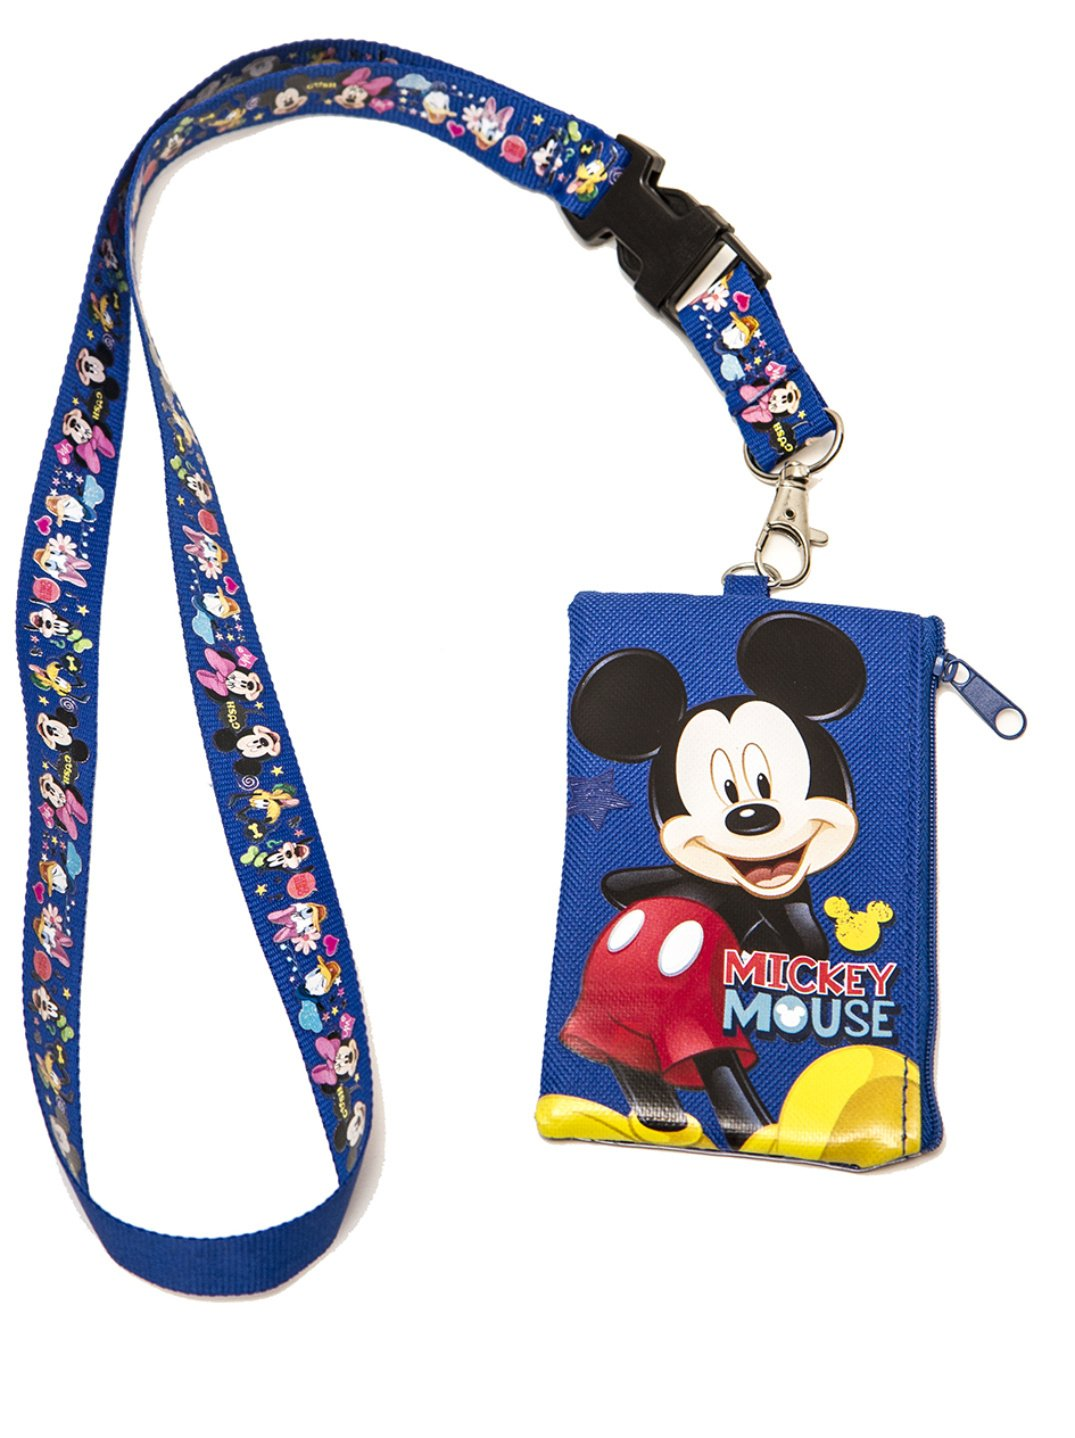 1 X Mickey Mouse KeyChain Lanyard Fastpass ID Ticket Holder Blue by Disney